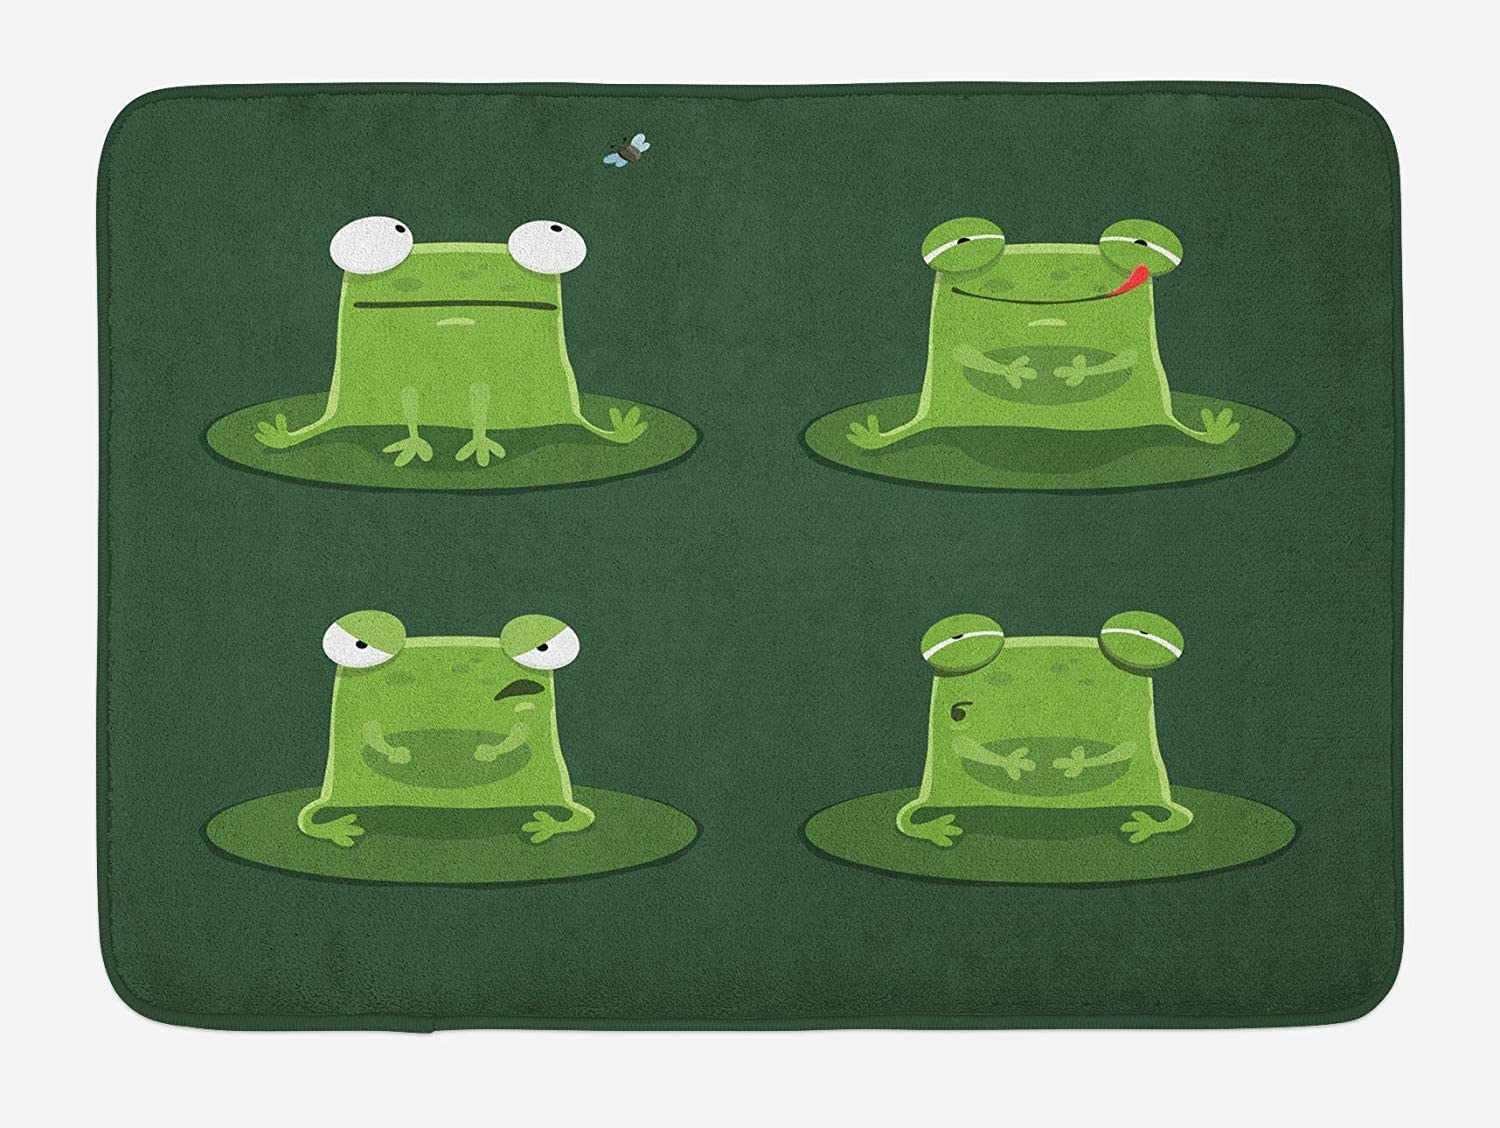 CdHBH in The Pond Lily Pads on The Lily pad Funny Confused Frog Modern Bathroom Home Decoration Non-Slip Bath mat Door mats Flannel Material Outdoor Door Decoration Room